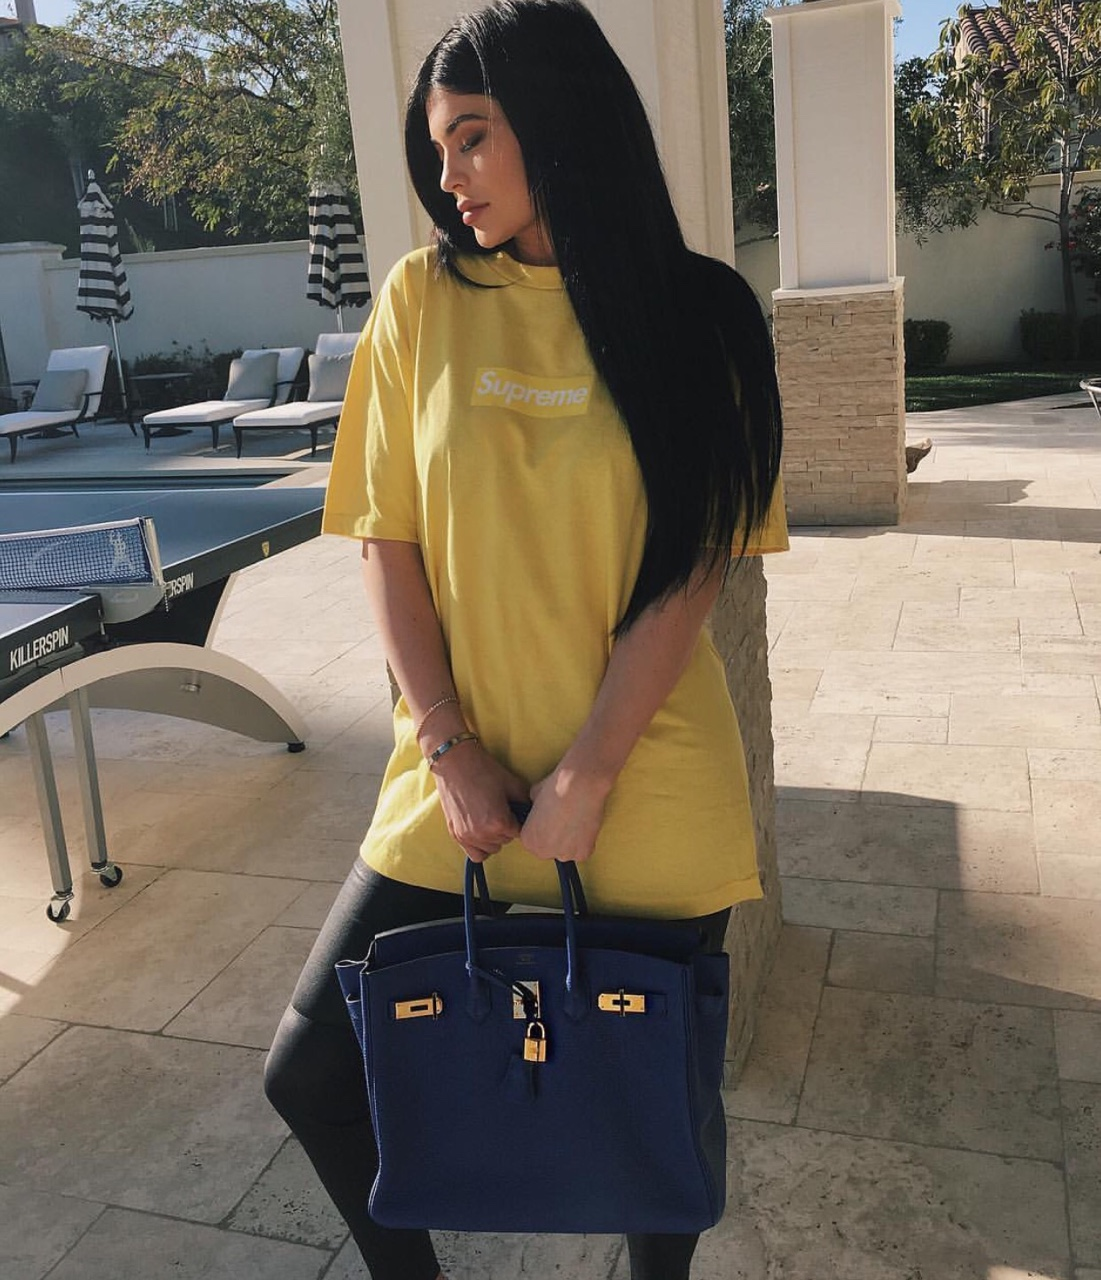 Kylie Jenner with an Hermes Kelly bag